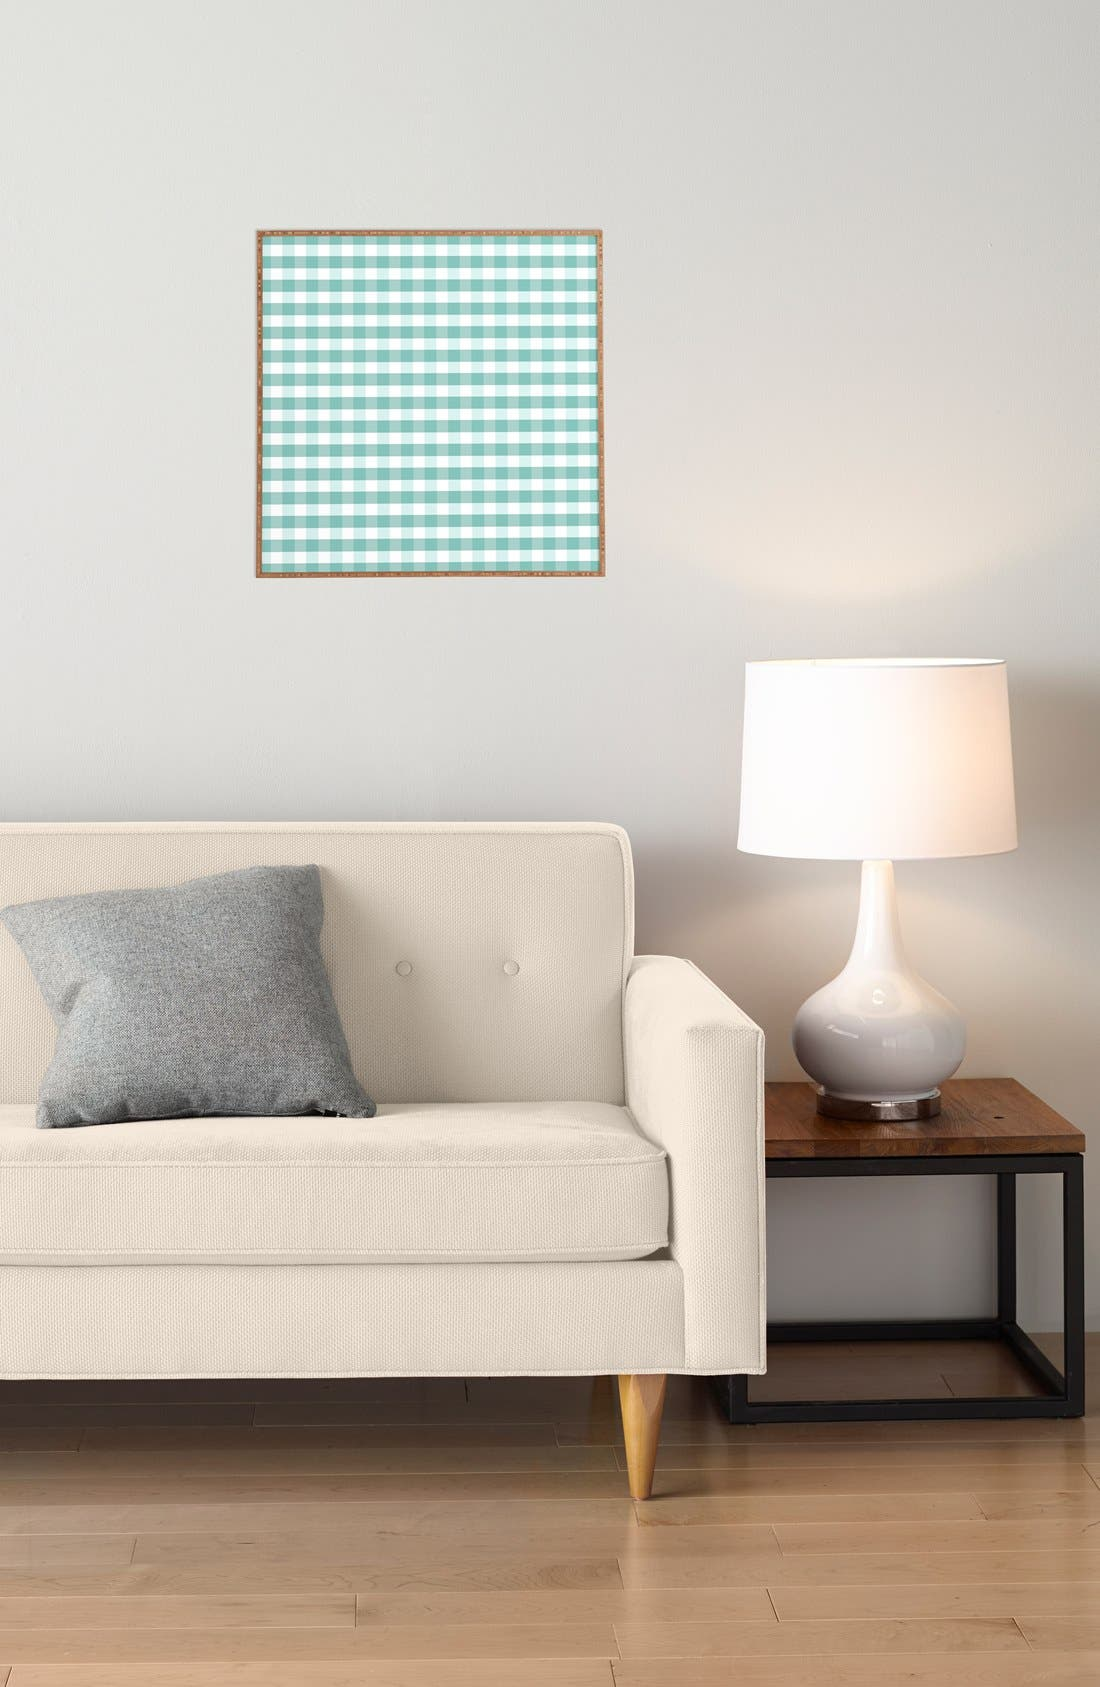 'Icy Gingham' Framed Wall Art,                             Alternate thumbnail 3, color,                             Blue